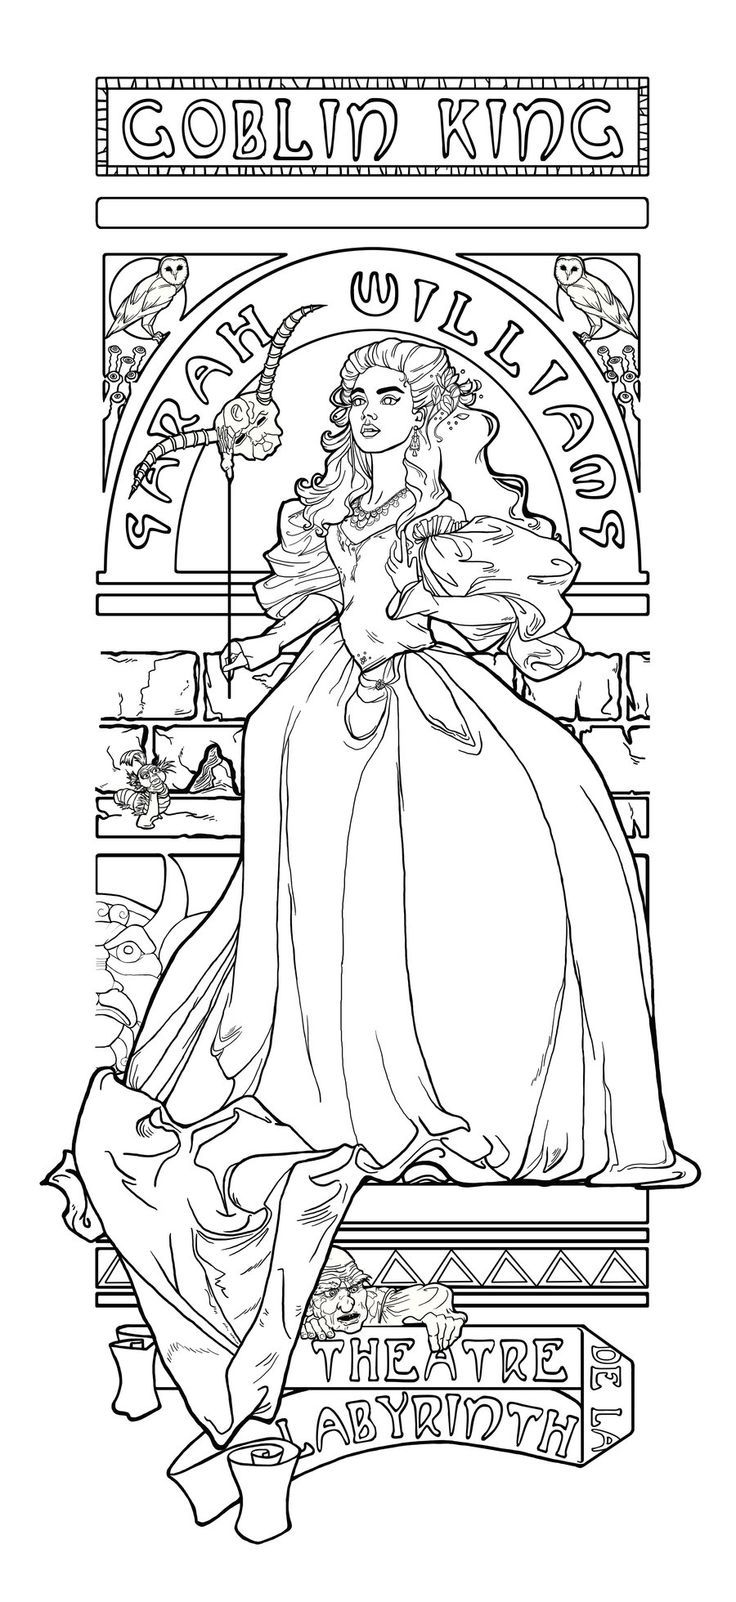 labyrinth coloring pages Pin by Jessica Omer on I'm Bored | Pinterest | Coloring pages  labyrinth coloring pages